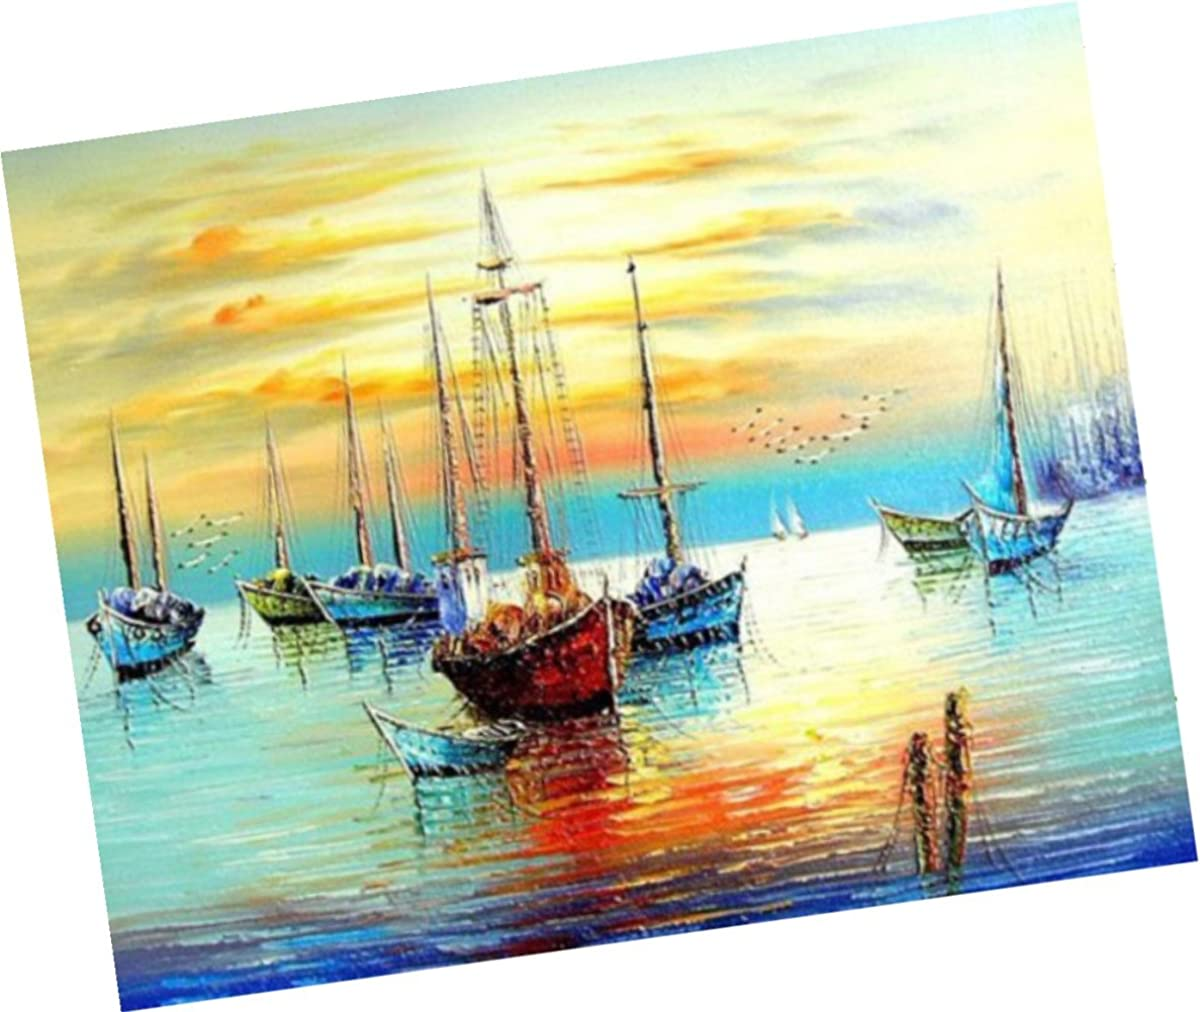 Wowdecor Paint by Numbers Kits for Adults Kids, Number Painting - Sunset Fishing Boat Sea Scenery 16x20 inch (framed)